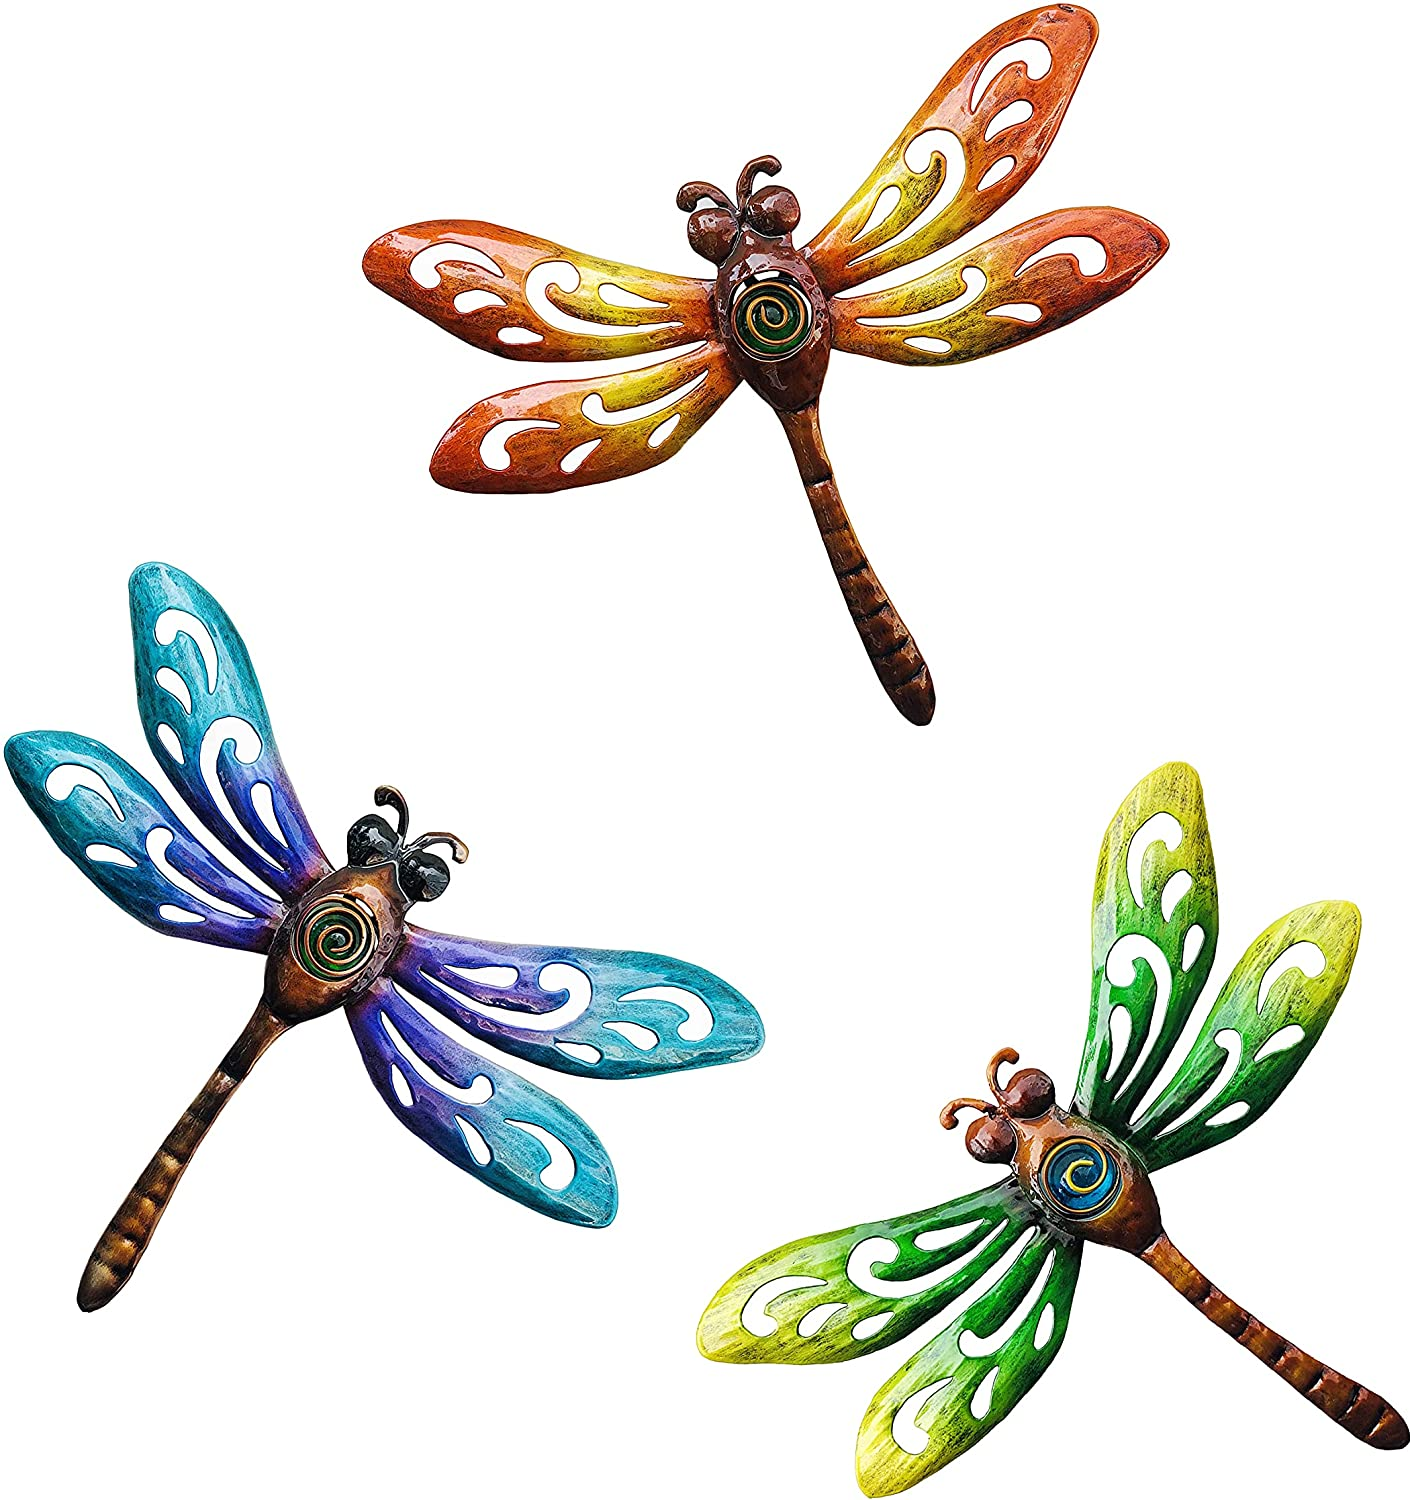 BVLFOOK Dragonfly Wall Art Decor, Metal Indoor Outdoor Fence Outside Hanging Decorations for Living Room Bedroom, 9 Inch 3 Pack, Hand-Made Vibrant Ornament Sculpture for Patio Balcony